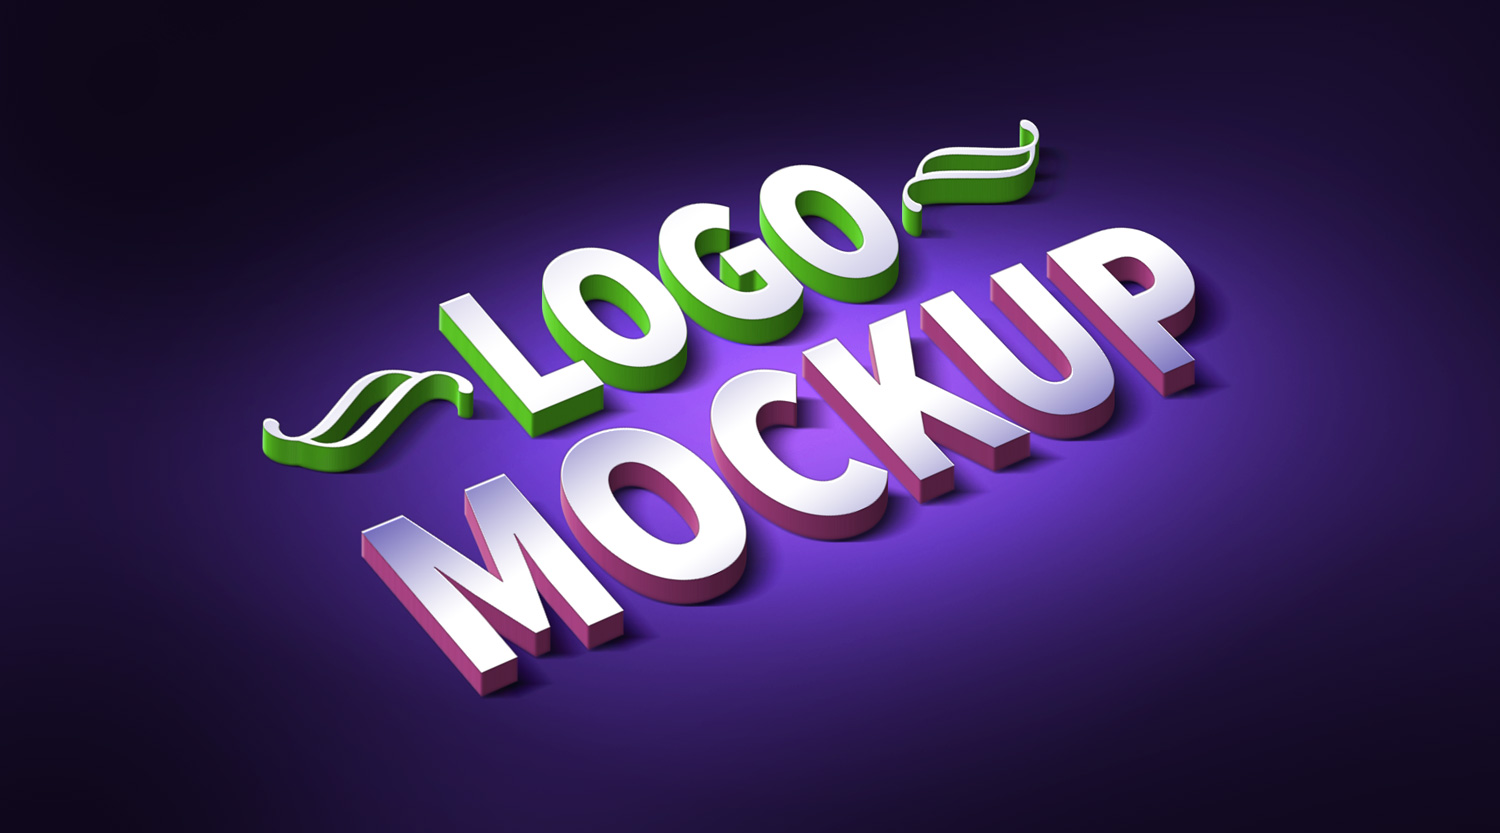 Photoshop tutorials archives graphicsfuel 3d logo text effect mockup baditri Image collections